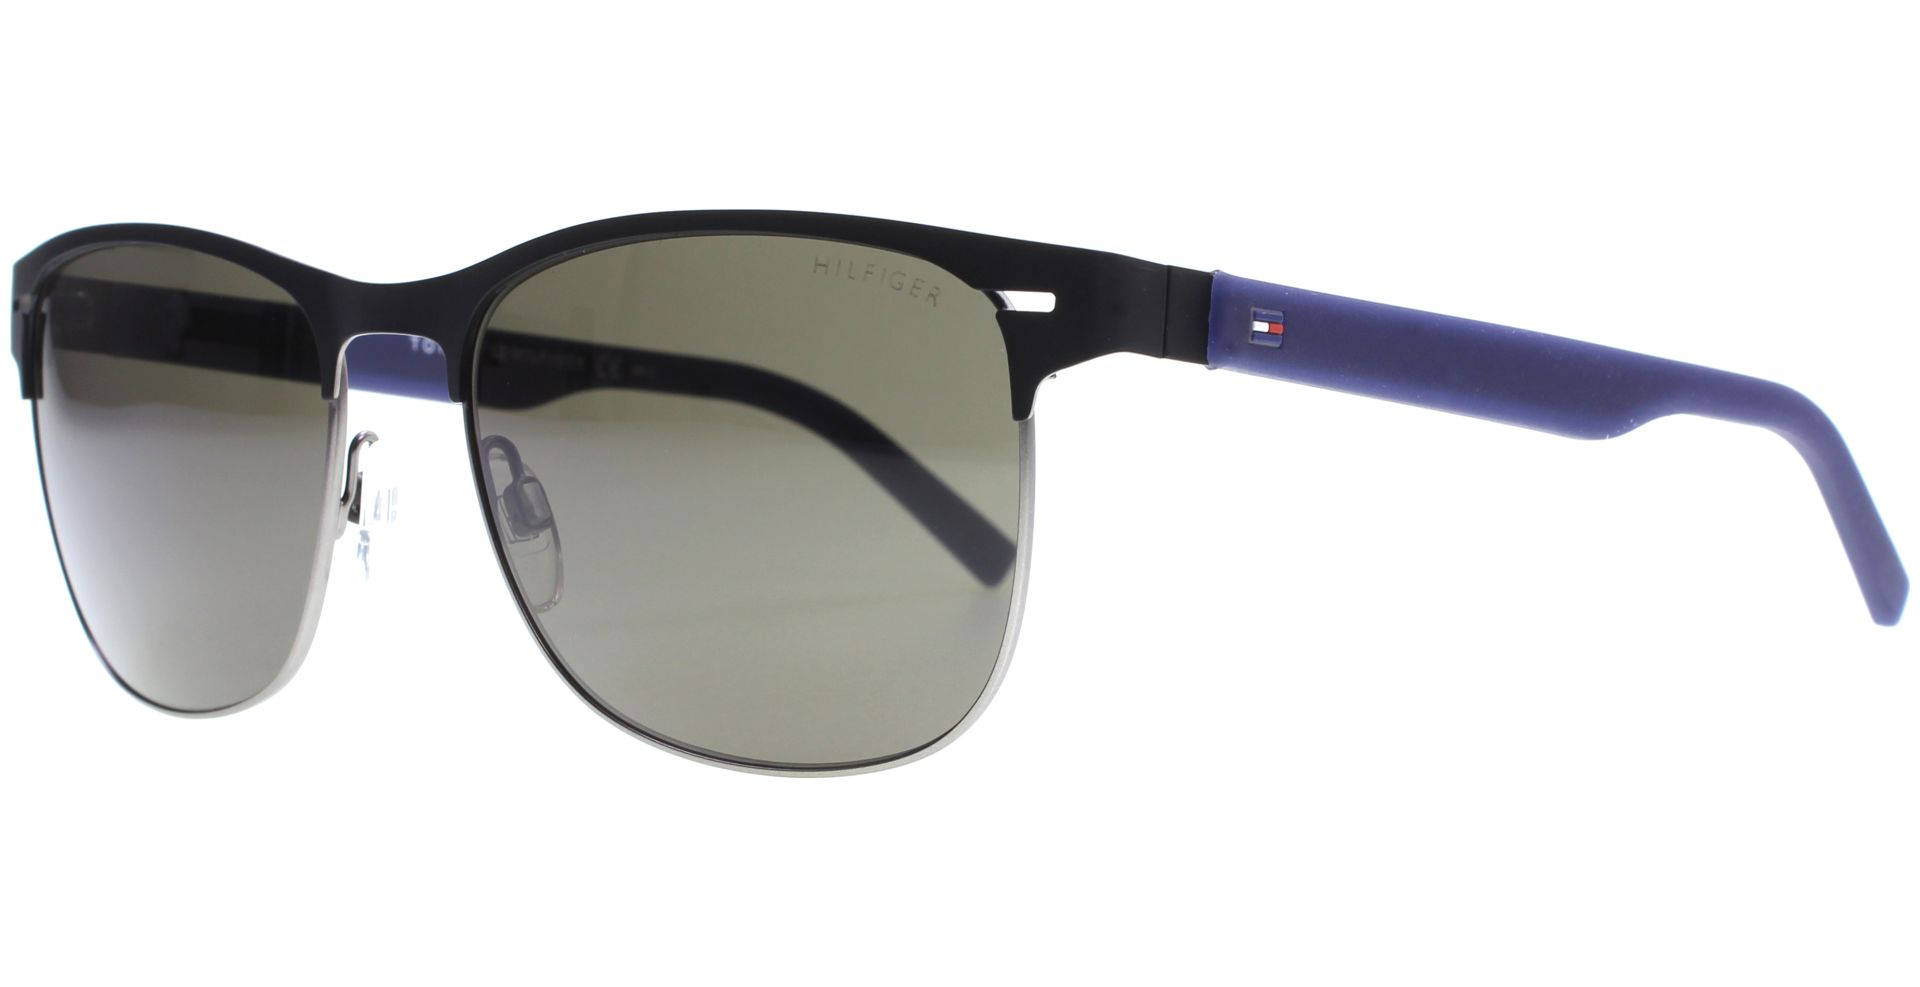 Tommy Hilfiger TH1401S R51NR Sonnenbrille mxfMo549Xh